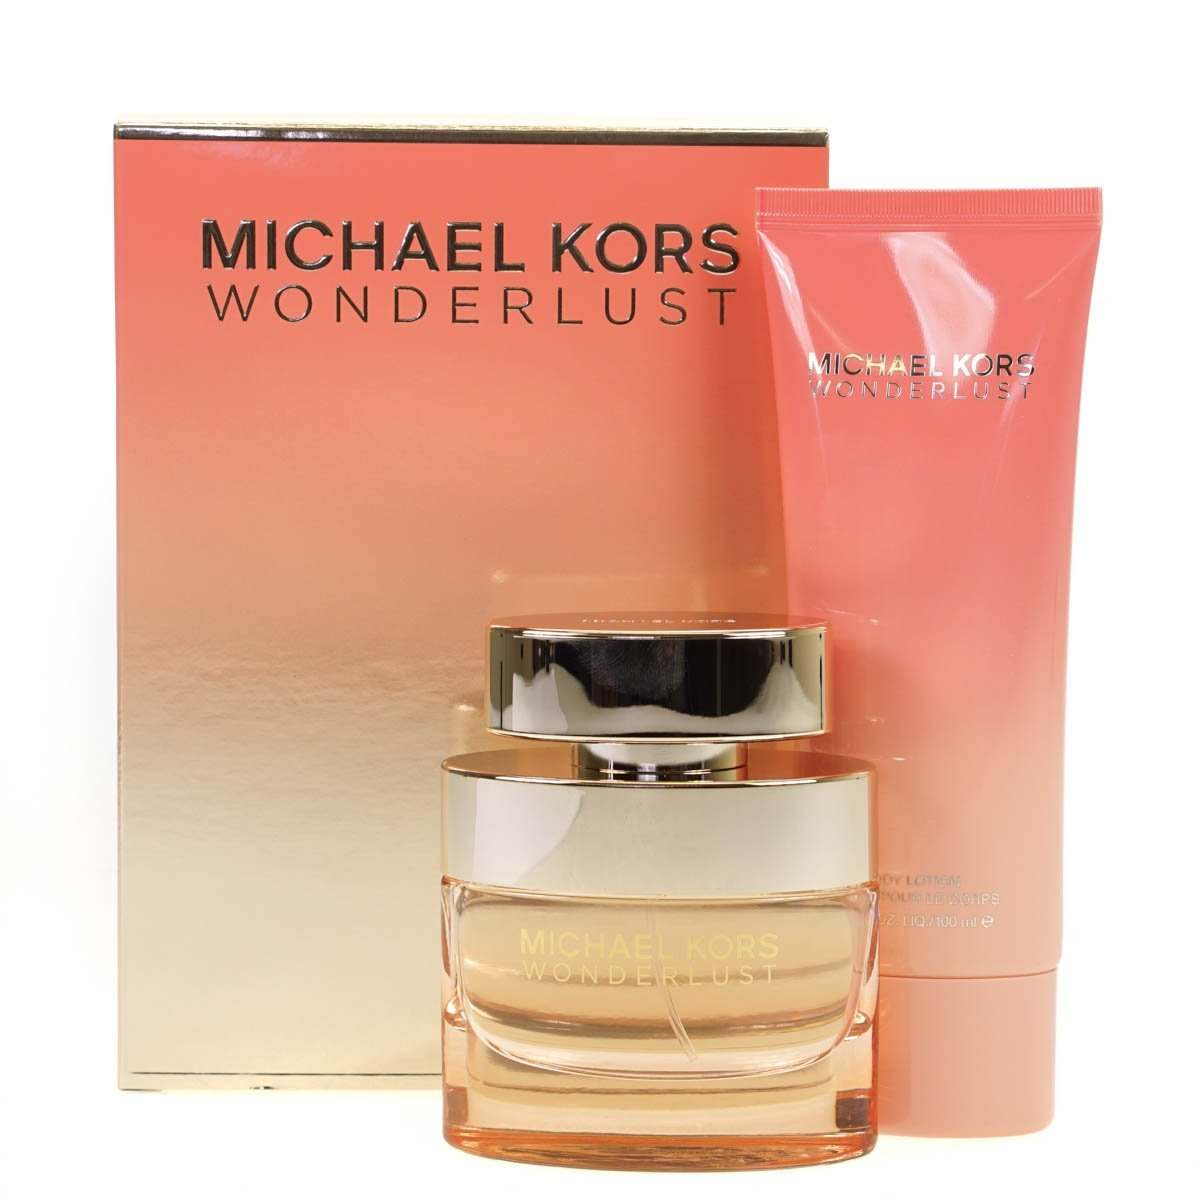 Michael Kors Wonderlust 50ml Eau De Parfum Perfume and 100ml Body Lotion Gift Set